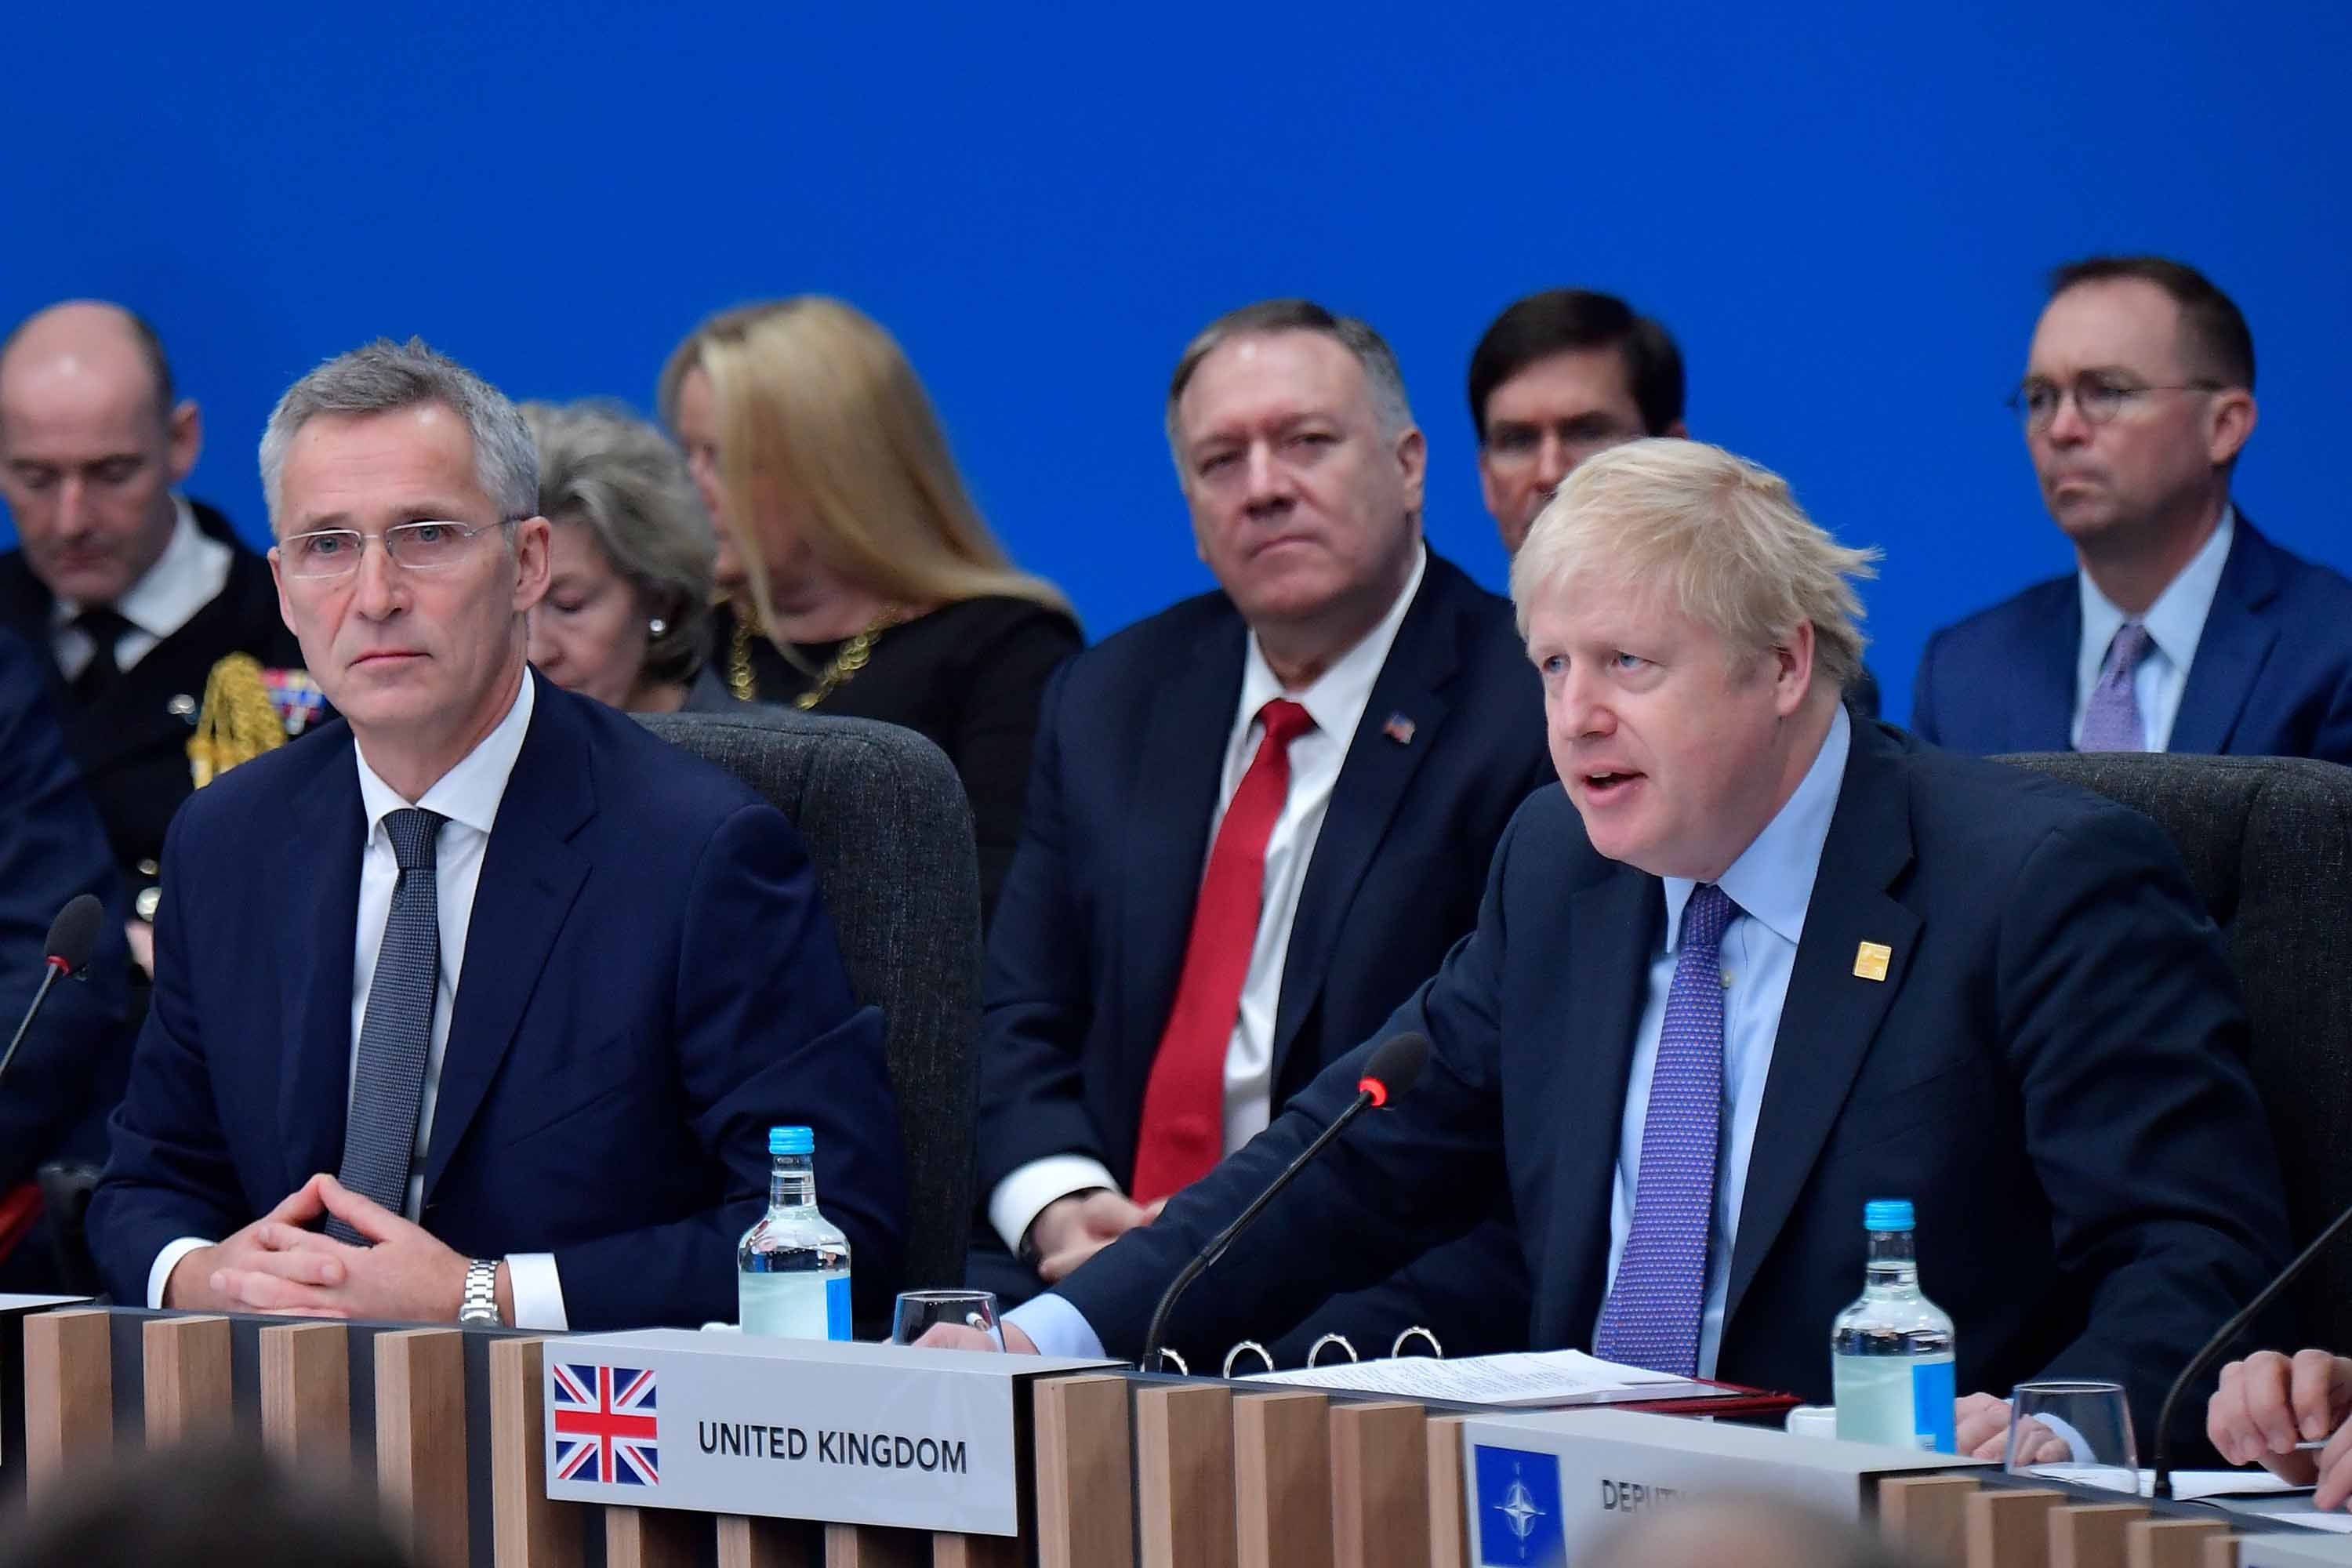 Prime Minister Johnson speaks at the plenary session of the NATO summit on Wednesday. Photo: Tobias Schwarz/AFP via Getty Images